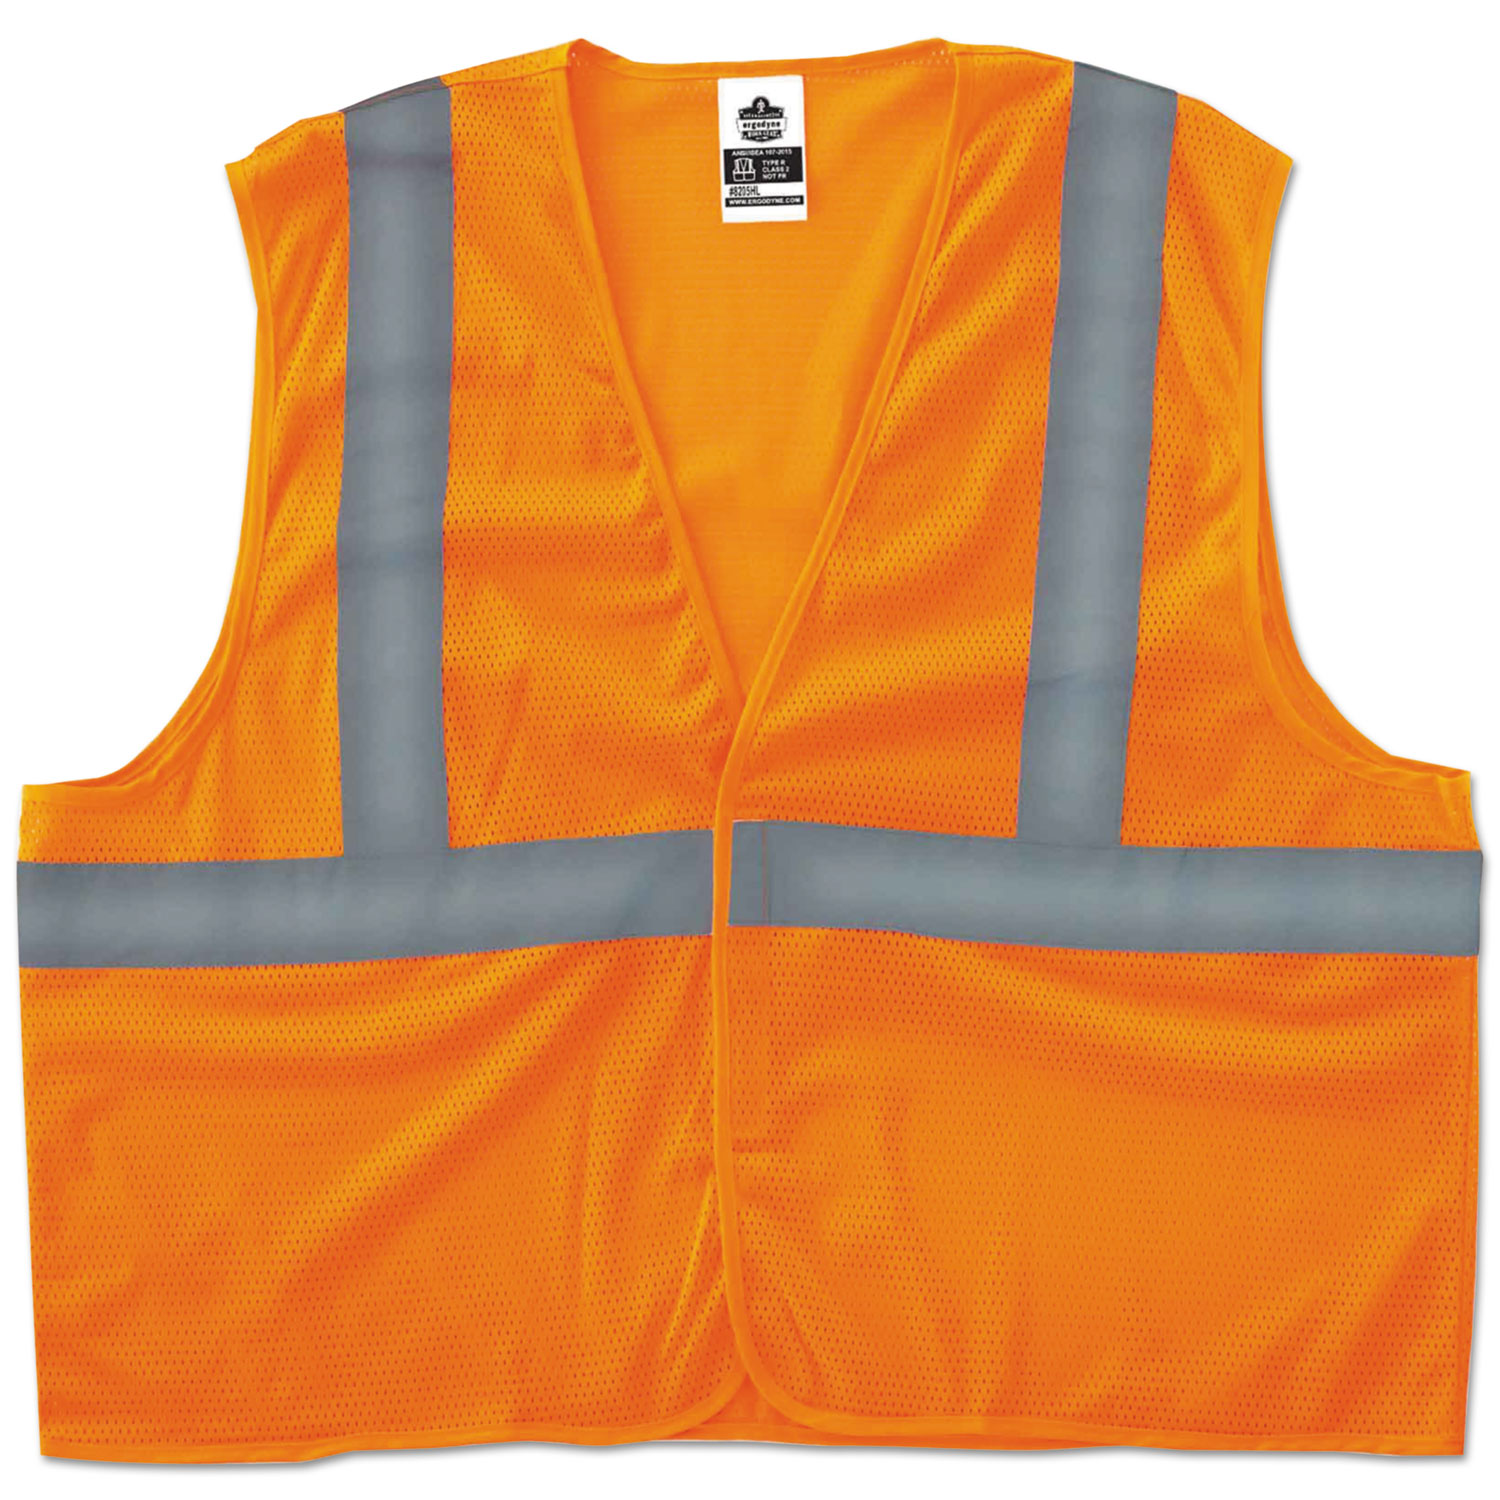 GloWear 8205HL Type R Class 2 Super Econo Mesh Vest, Orange, 4XL/5XL